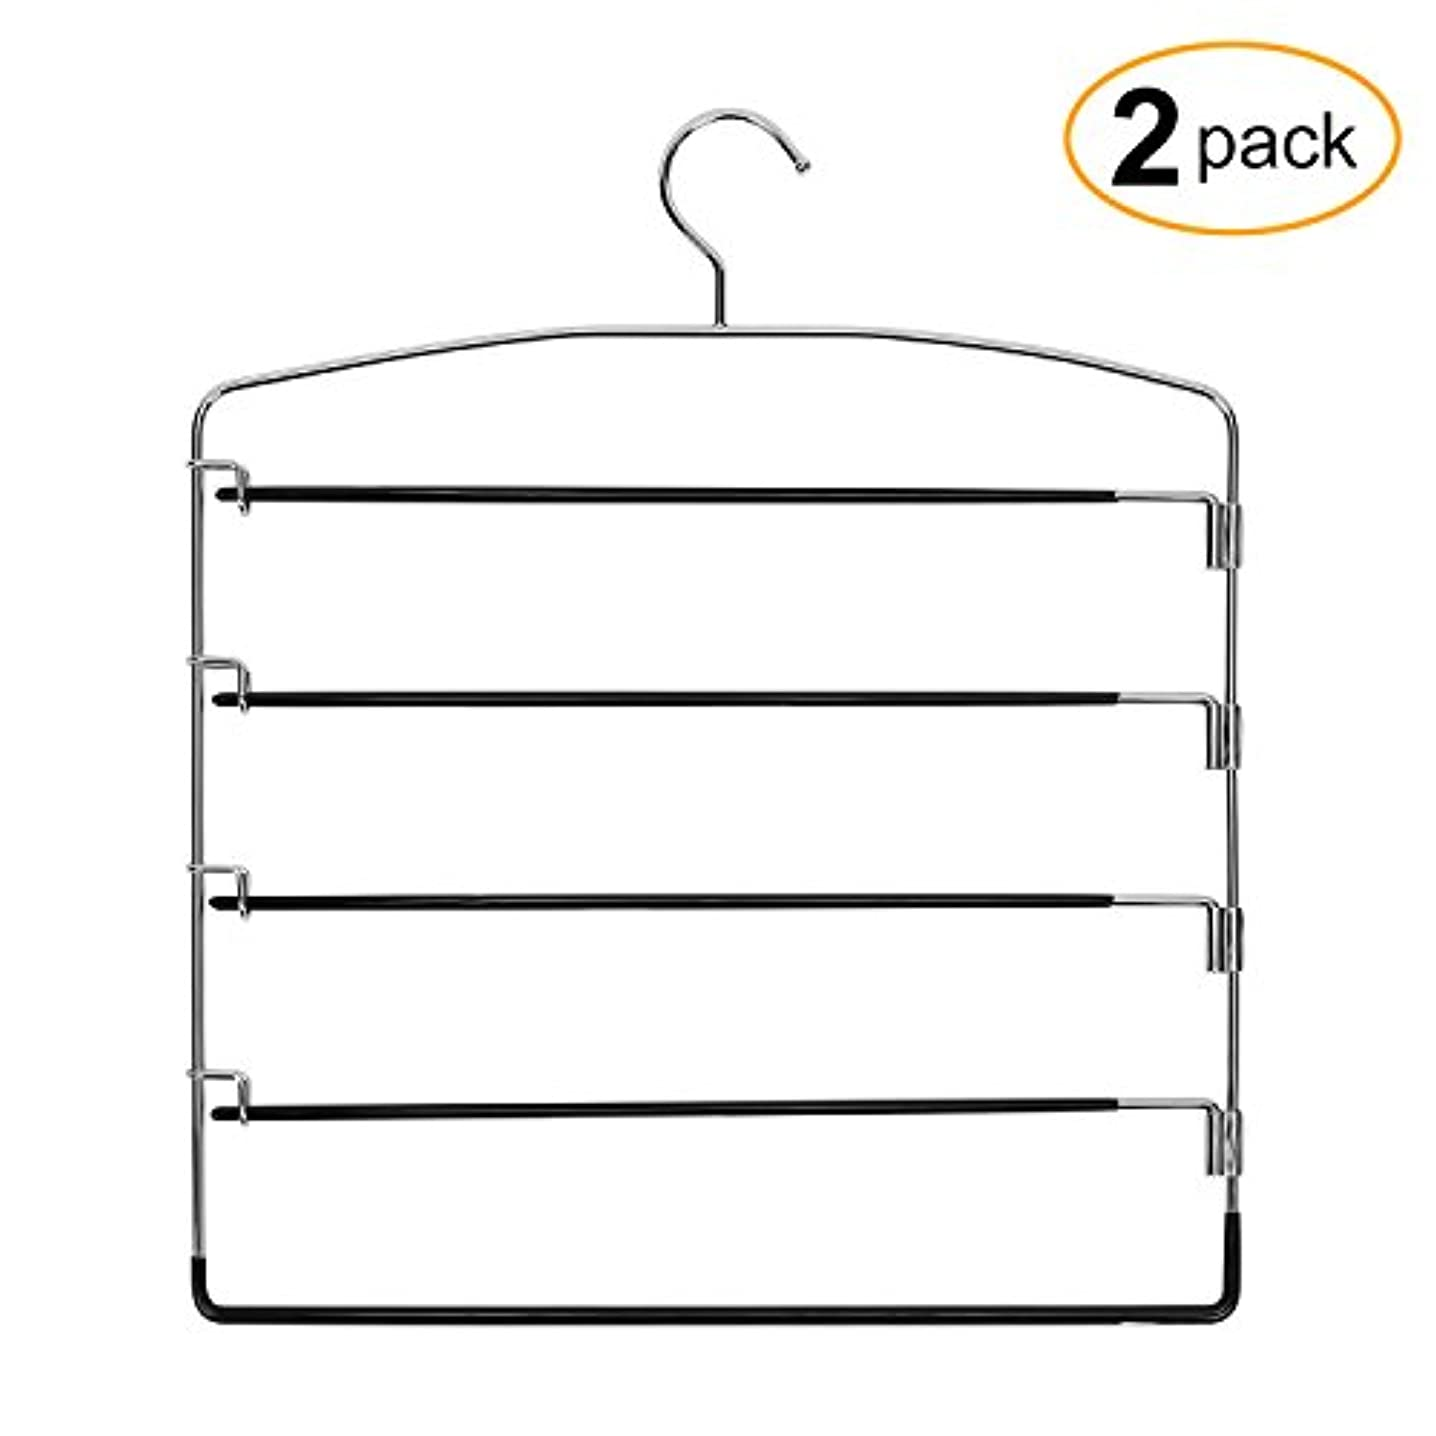 Corodo Black Pants Hangers 2 Pack, No Slip Multi Pant Hanger for Jeans Trousers, Skirts, Scarf, 5 Tier Swing Arm Pant Rack